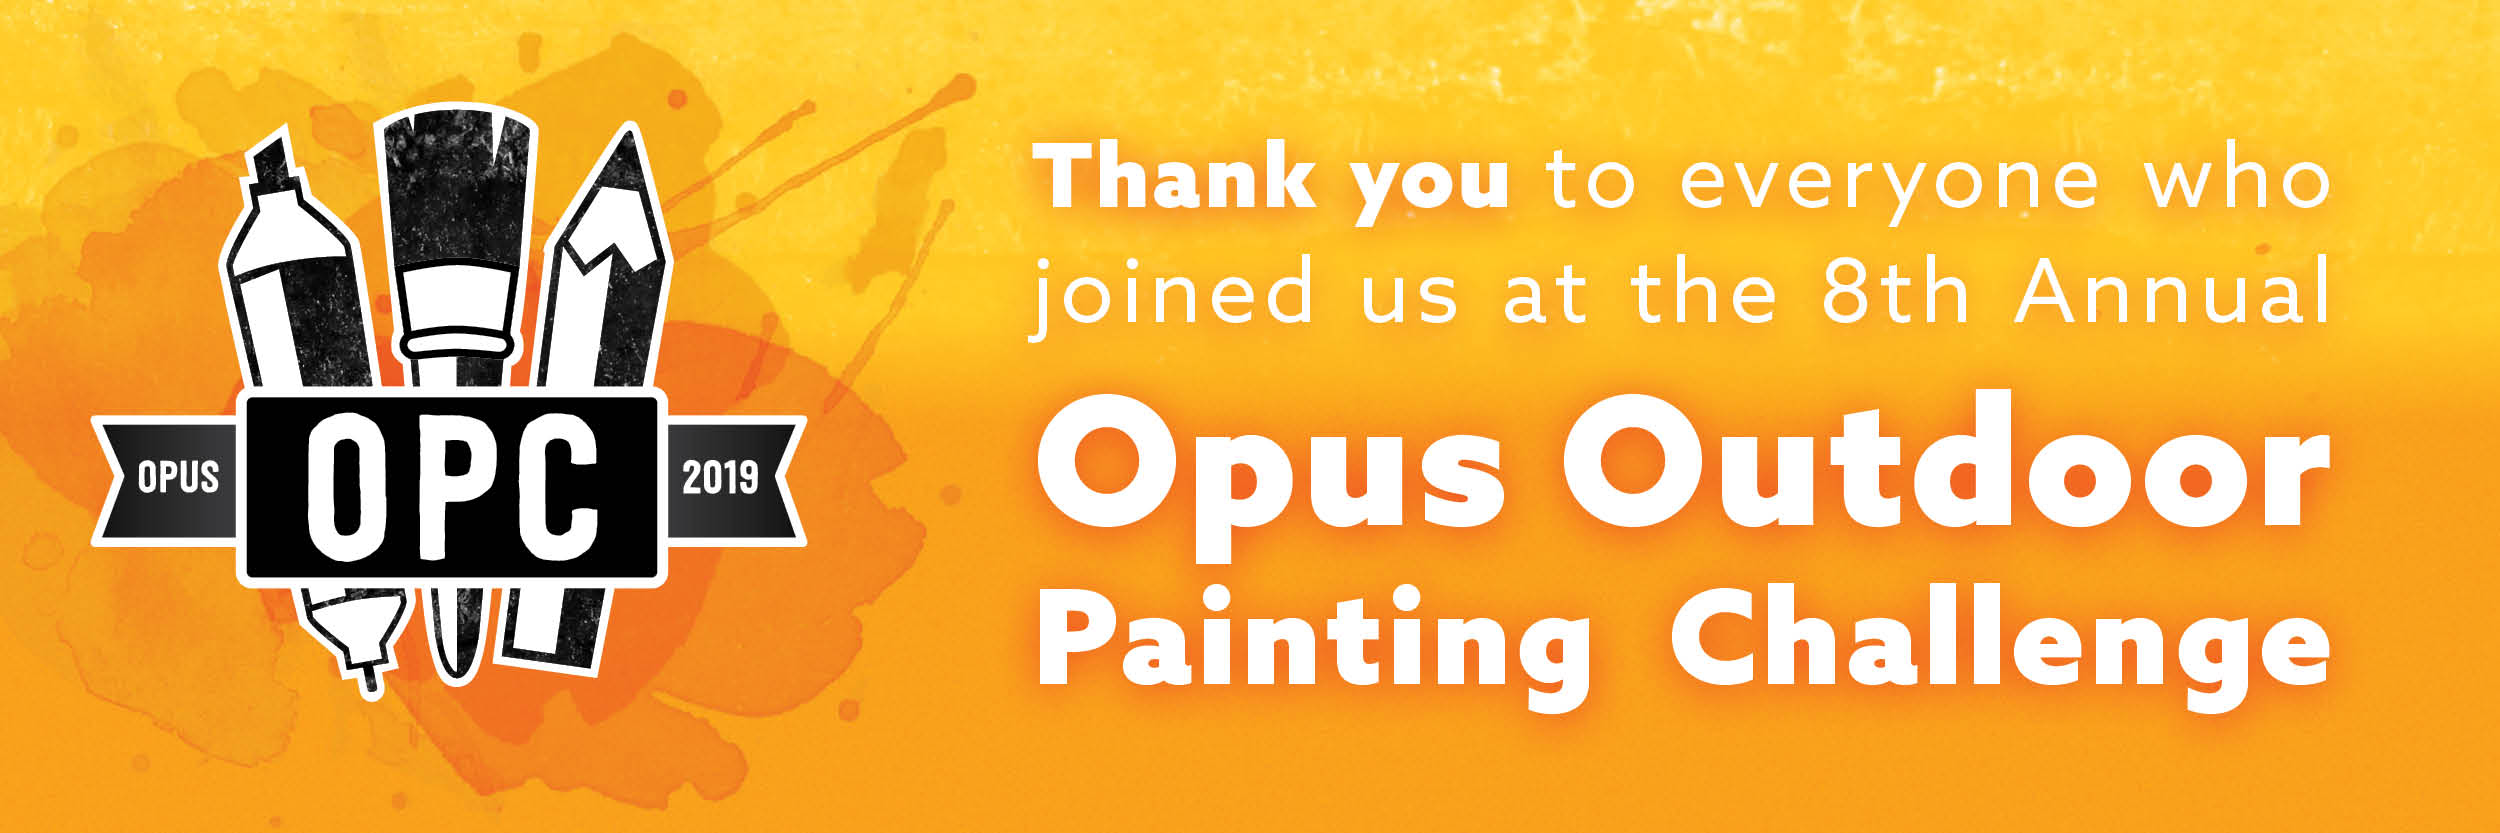 Thank you<br /> to everyone who joined their creative community for the 8th Annual #OpusOPC!